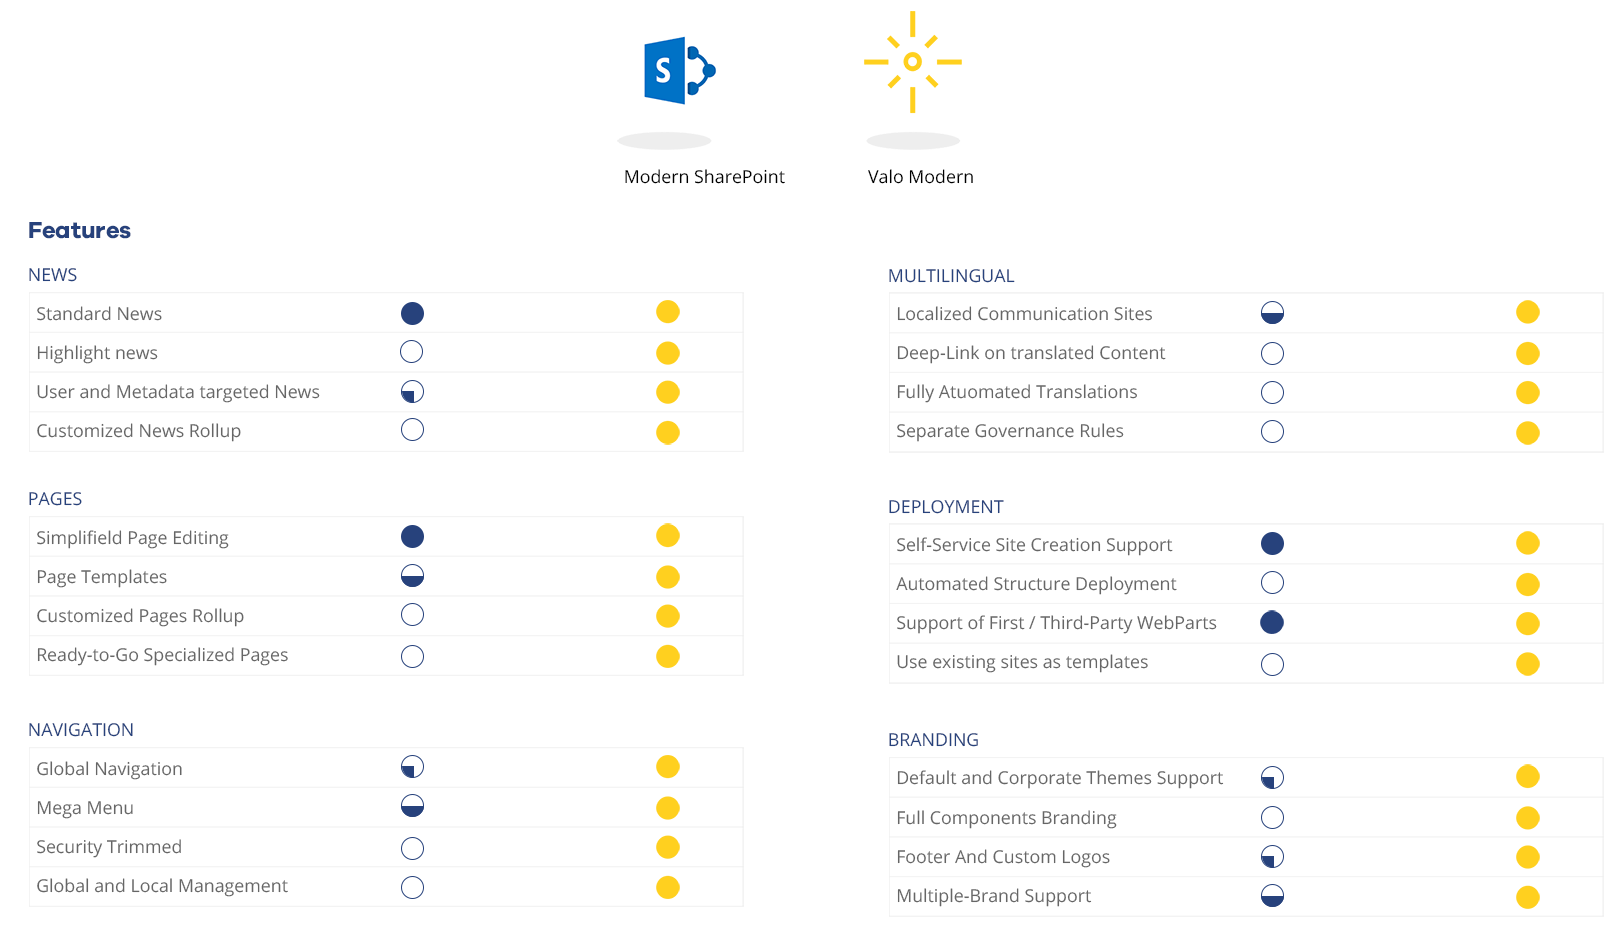 modern features in a glance